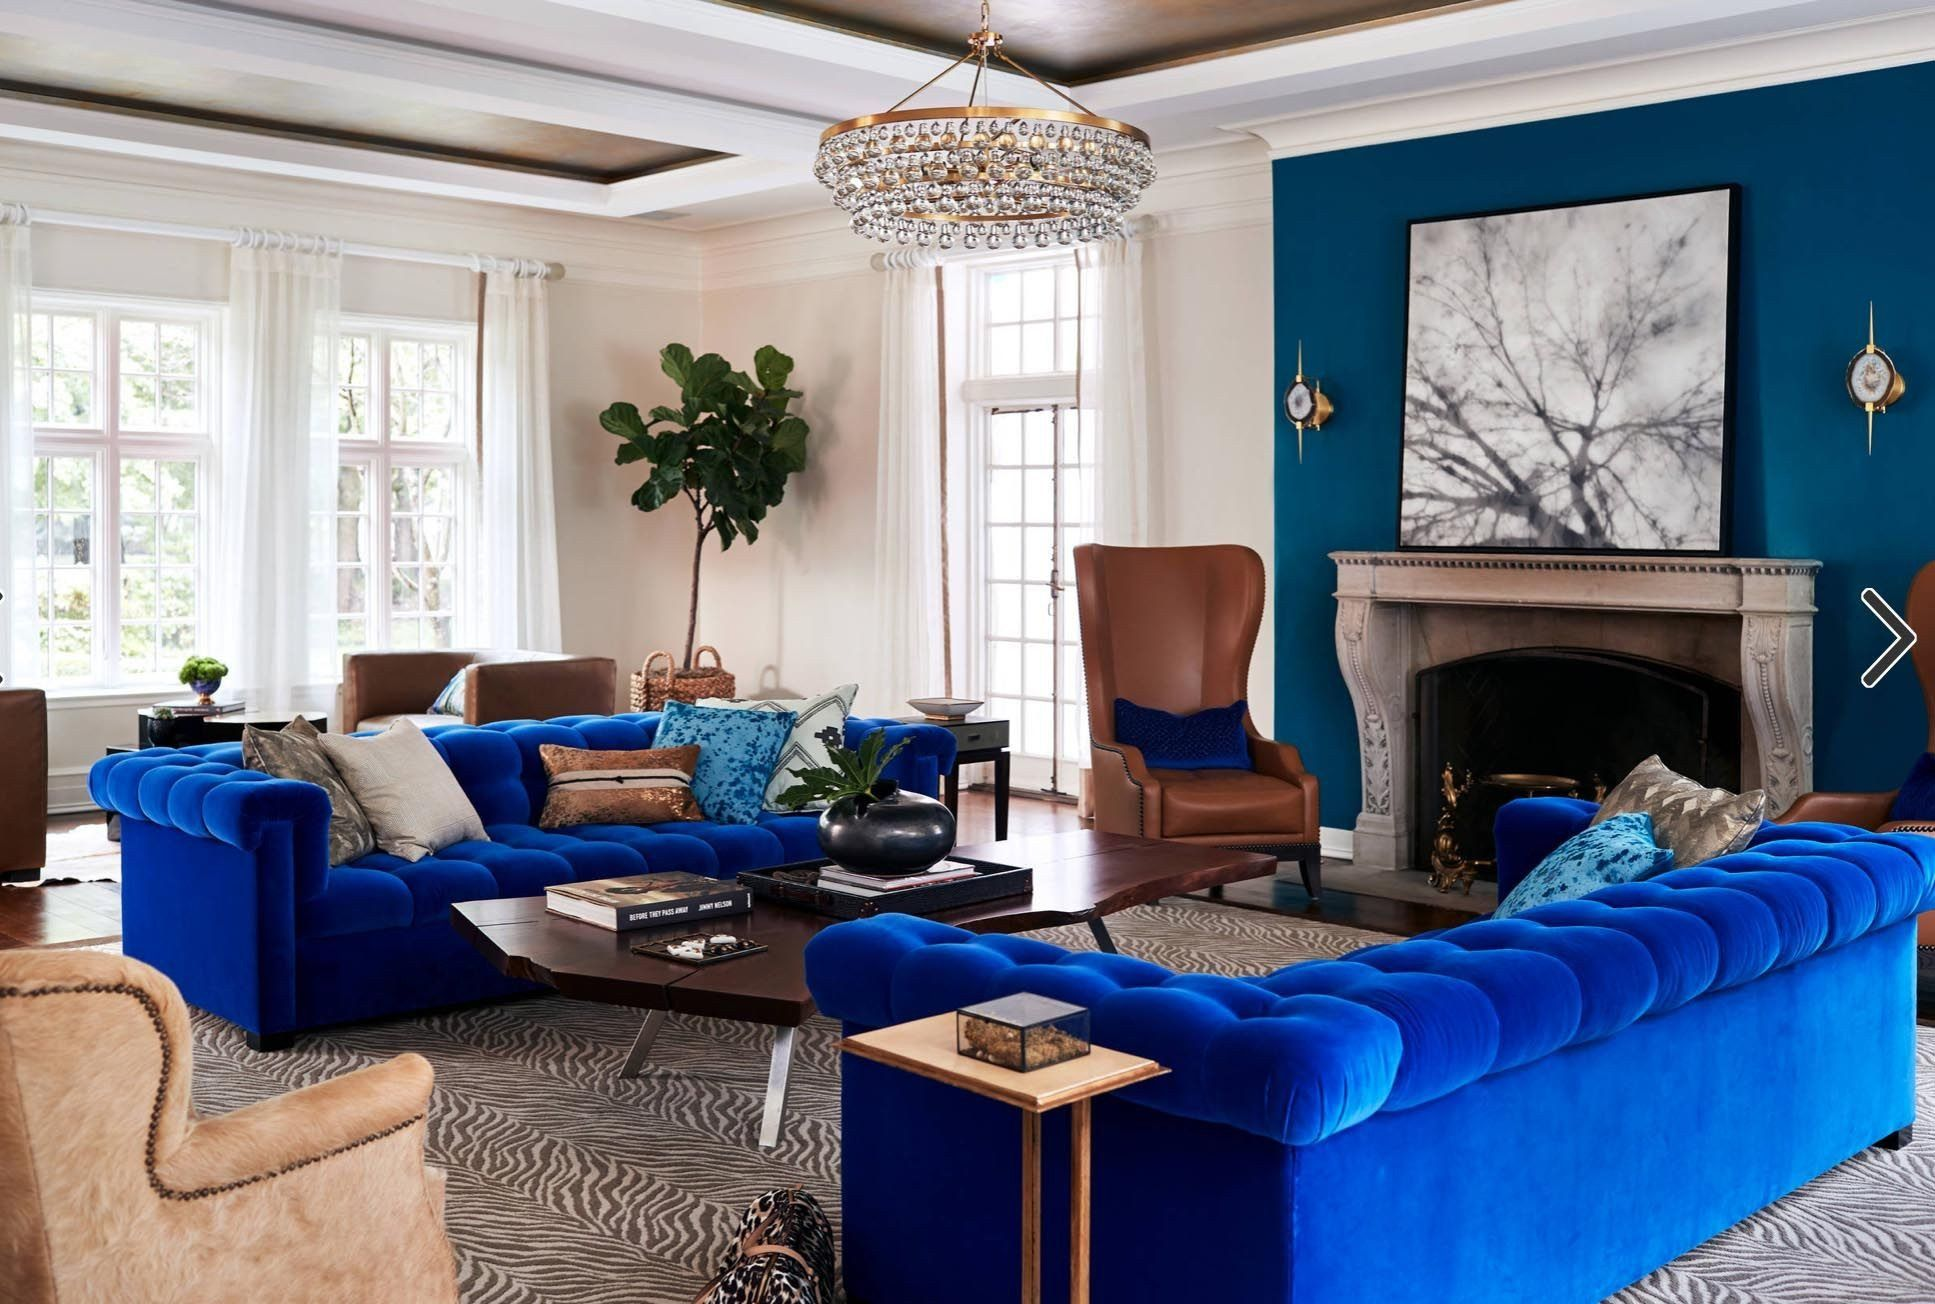 Living Room Decor In Blue Couch Cobalt Blue Living Room Decor Blue Sofa Beautiful Luxury Blue Living Room Decor Blue Sofas Living Room Blue Living Room